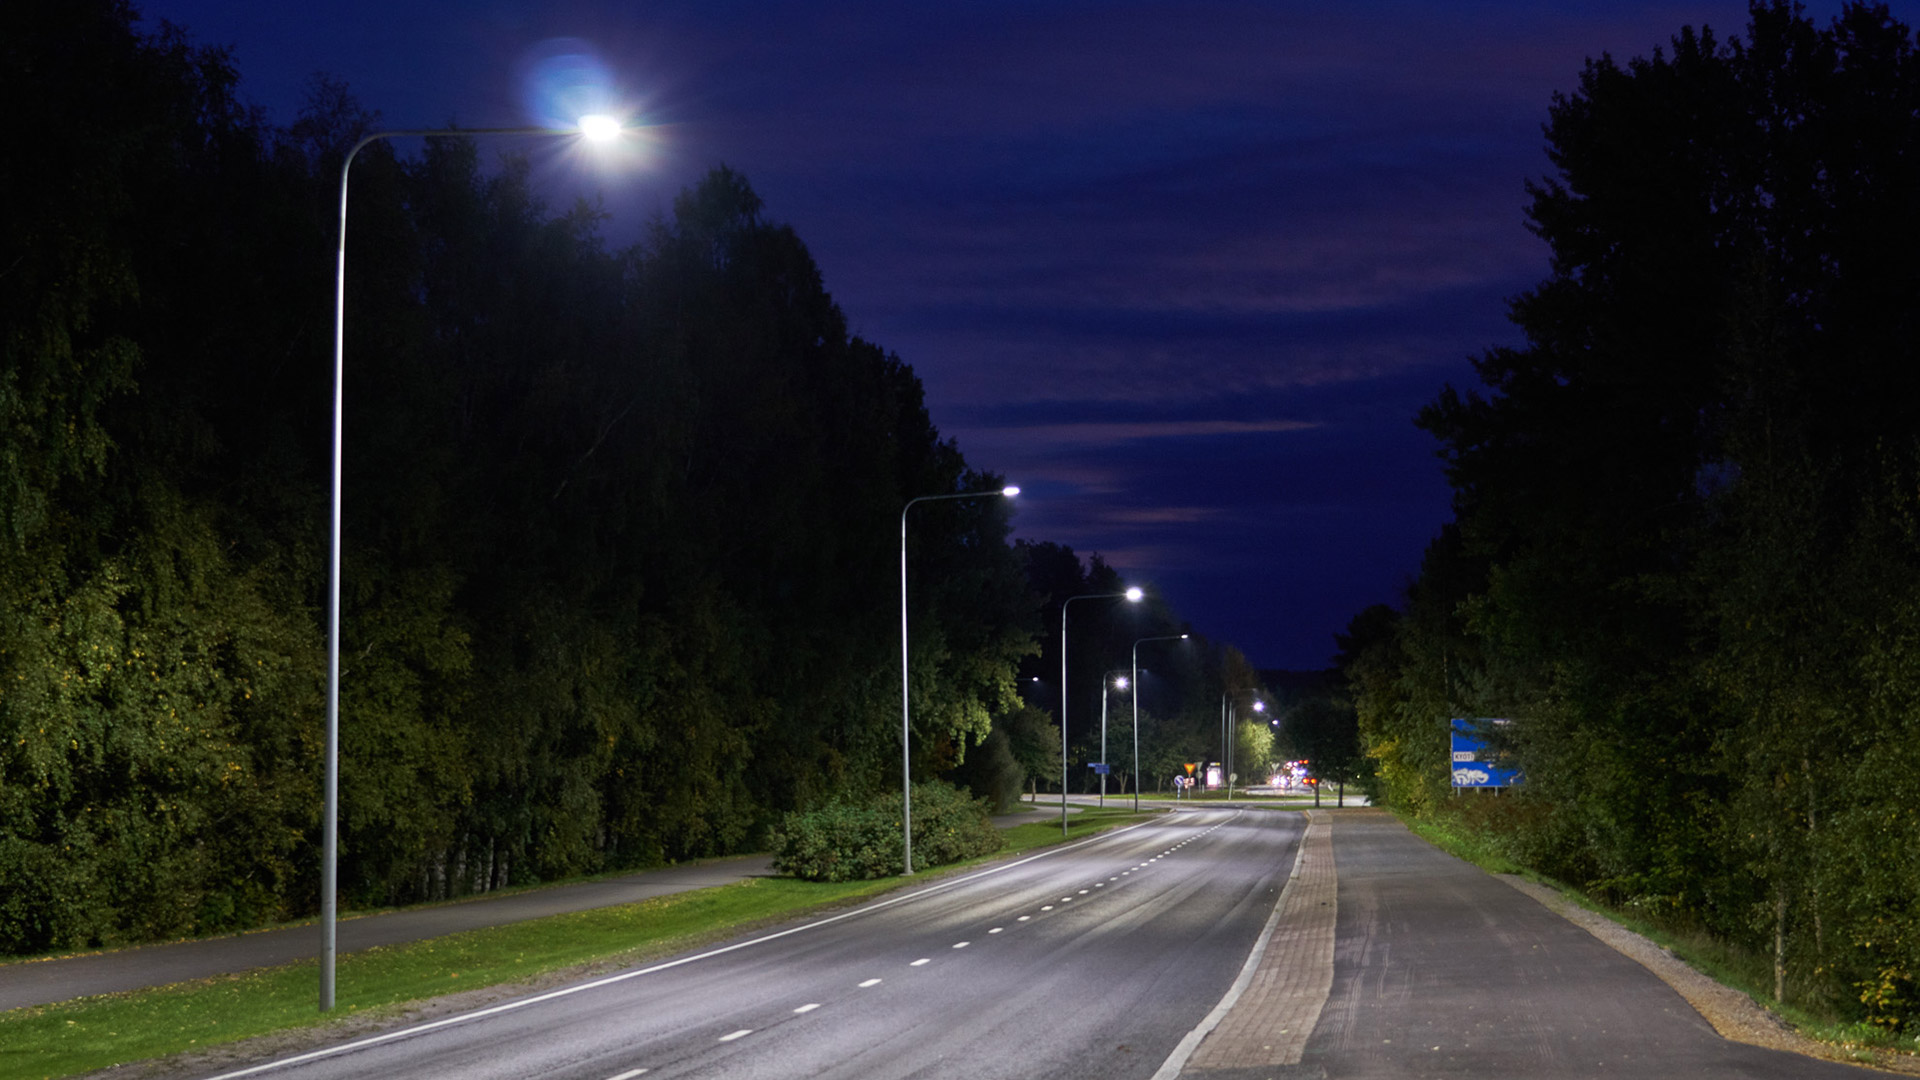 Looking for the Perfect Street Light? Ask Yourself These 4 Questions